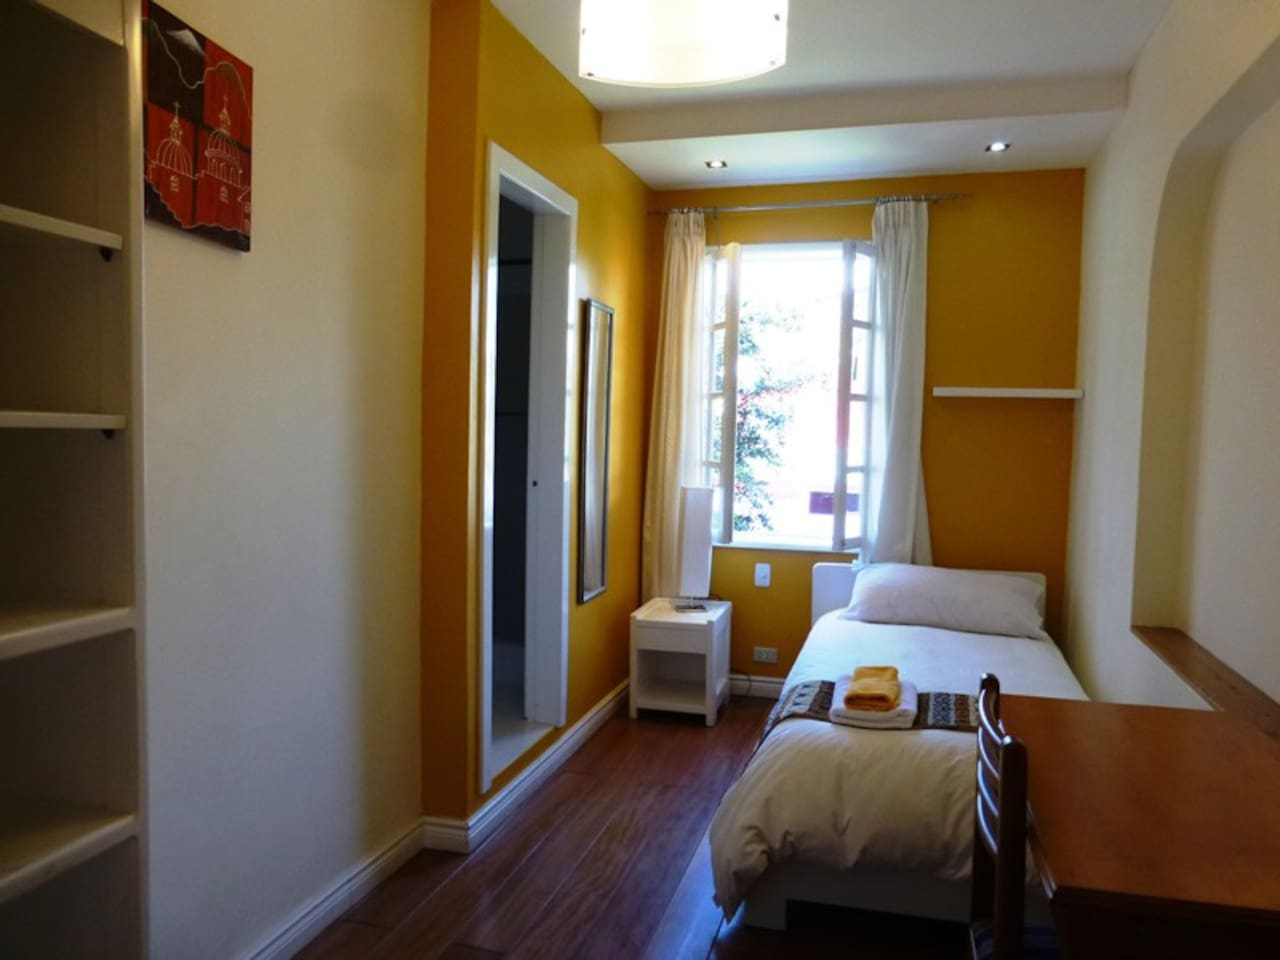 Hotel Cayman. All rooms have private bathrooms and there are several common areas to relax.